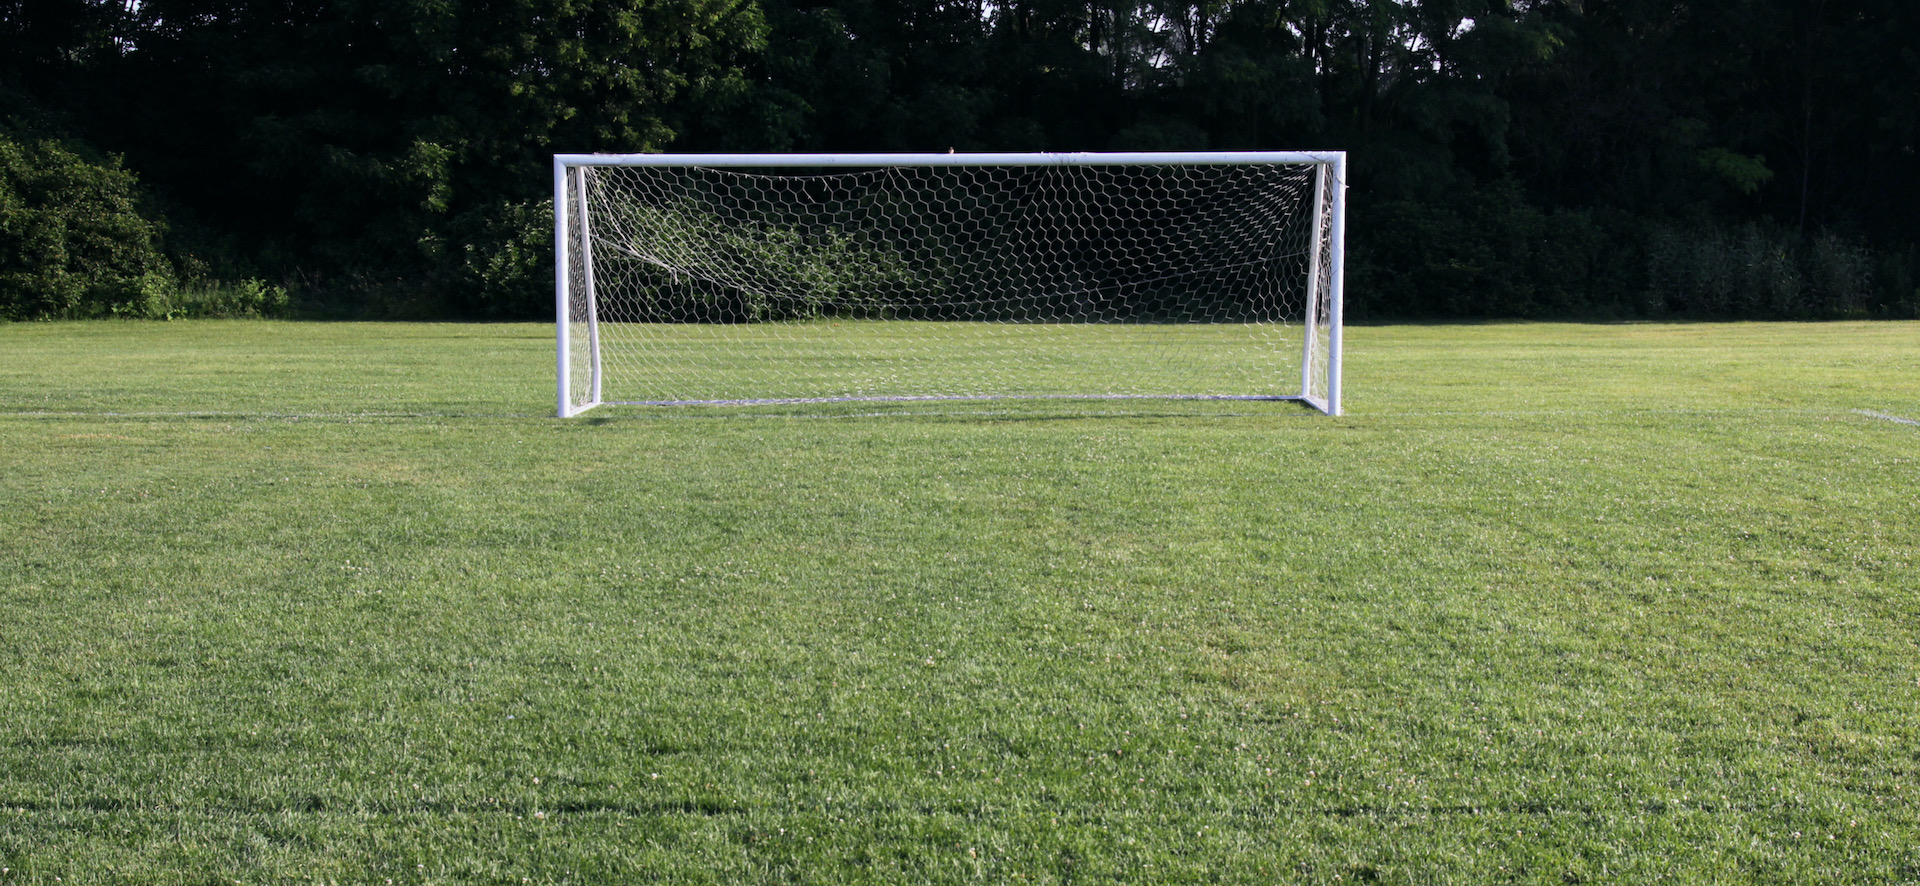 An empty, grass football field. The camera is looking at an open goalmouth.